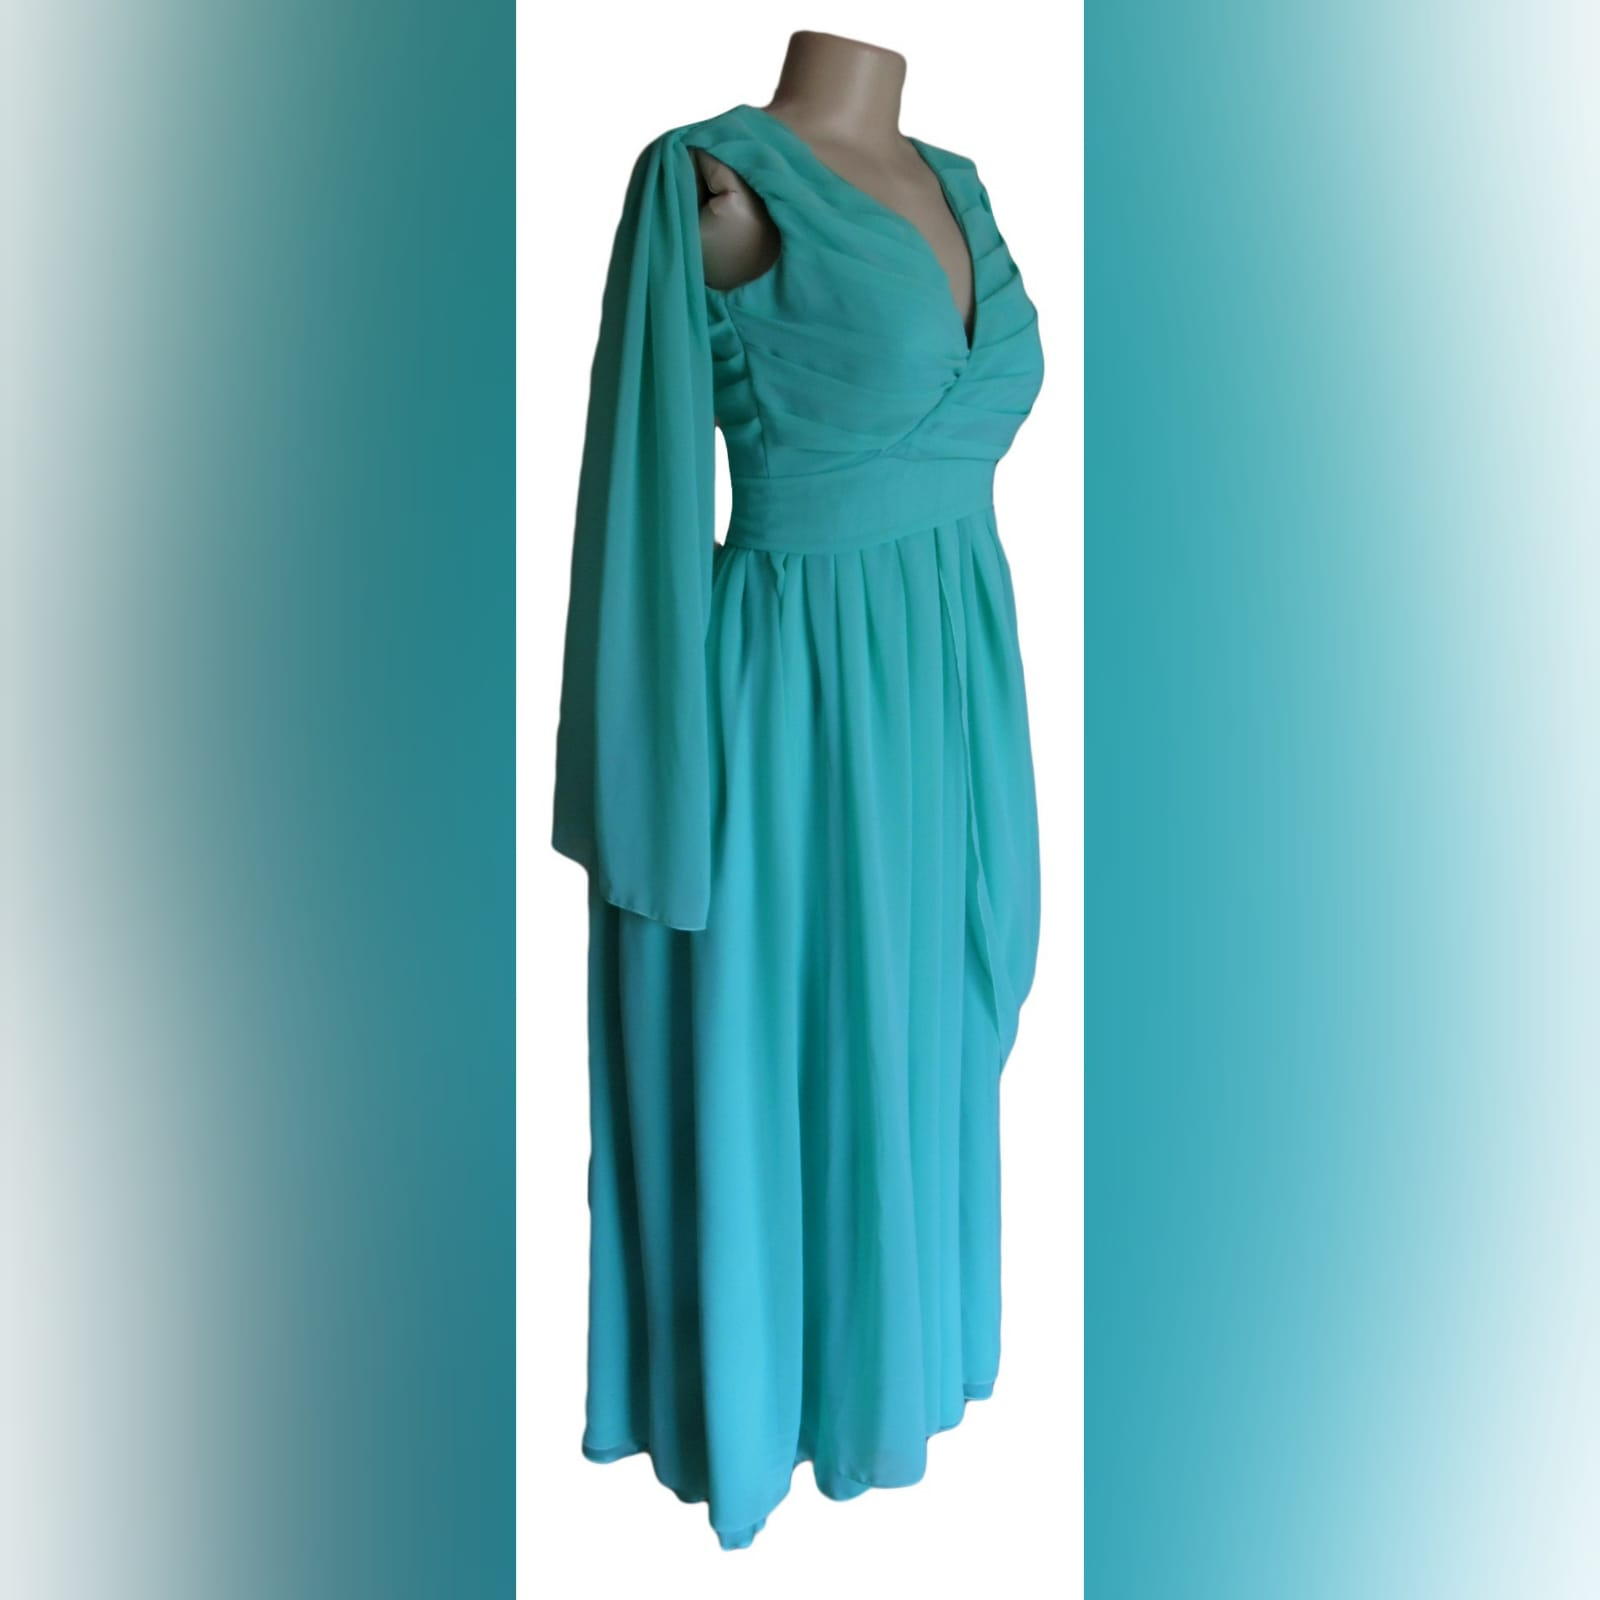 Mint green, long draped mother of the brides dress 3 mint green, long draped mother of the brides dress. With a crossed bust v neckline. Shoulder and hip draping detail.